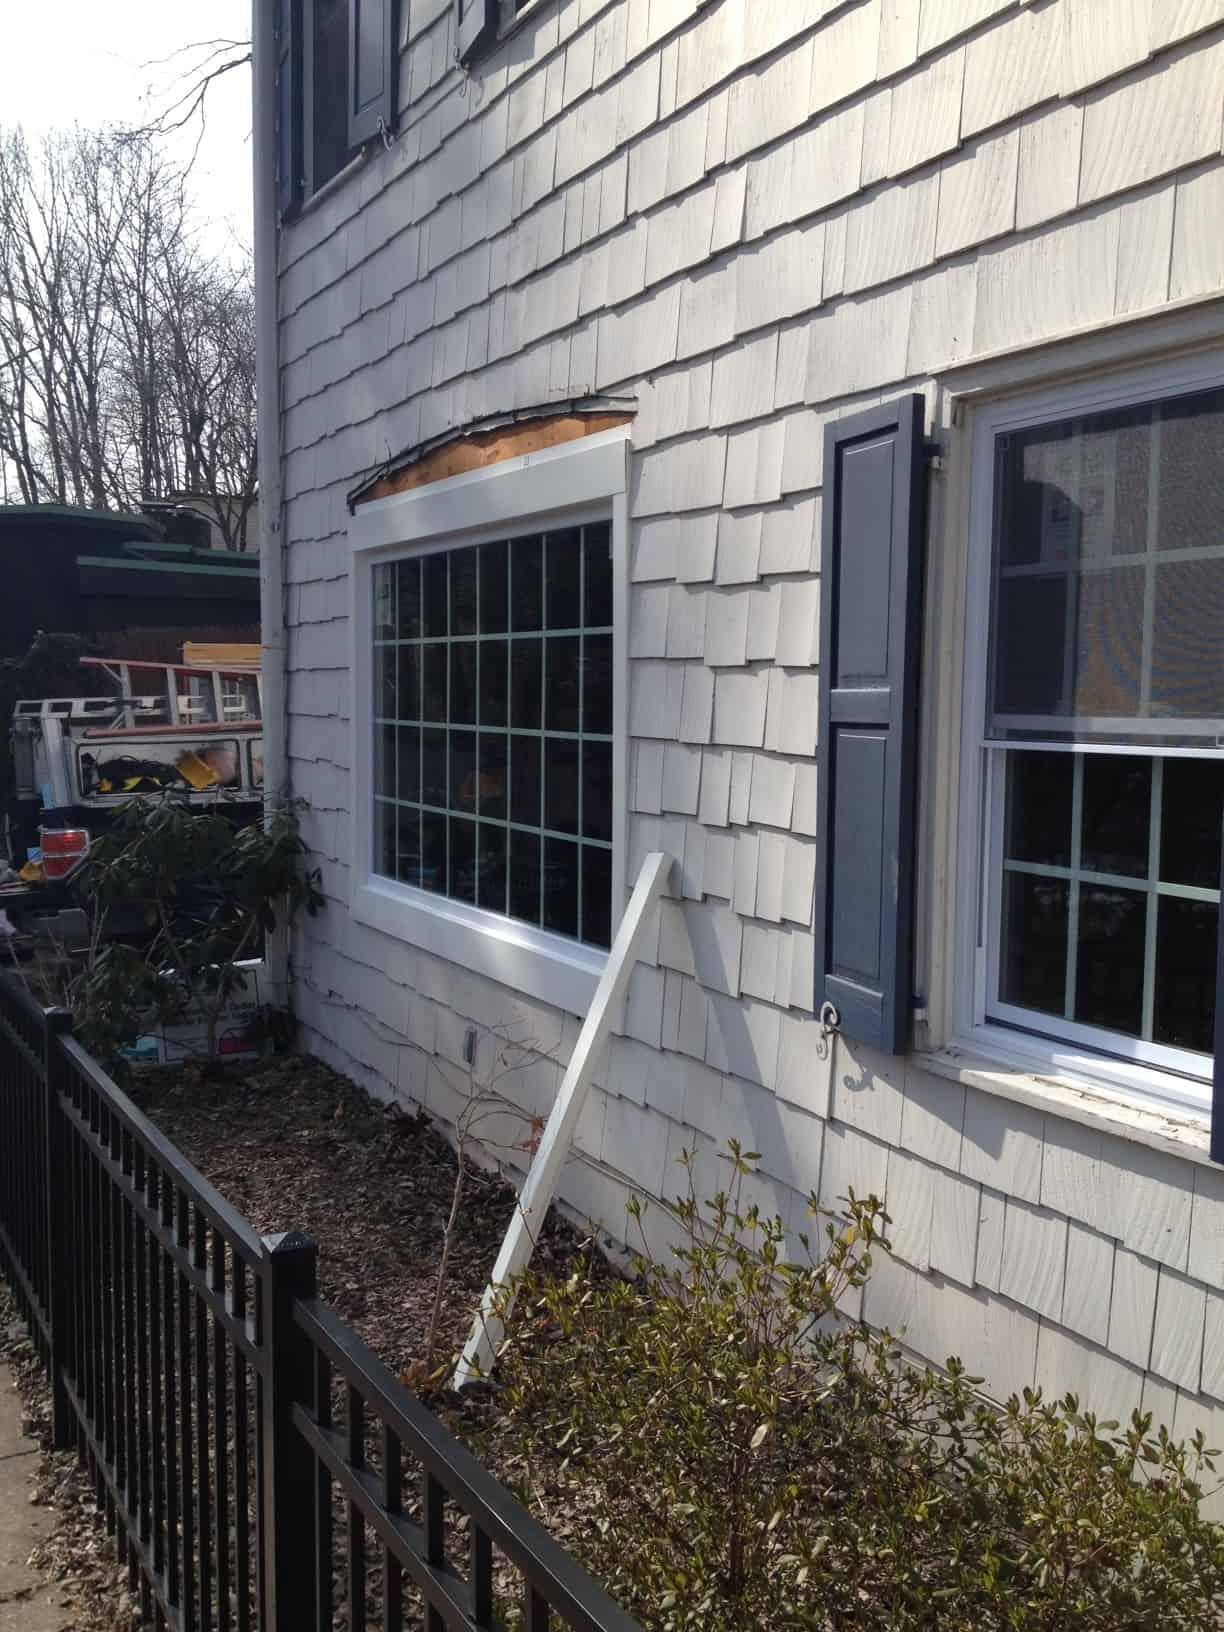 We Recently Had New Windows Installed And Could Apply For An  Energy Efficient Tax Credit